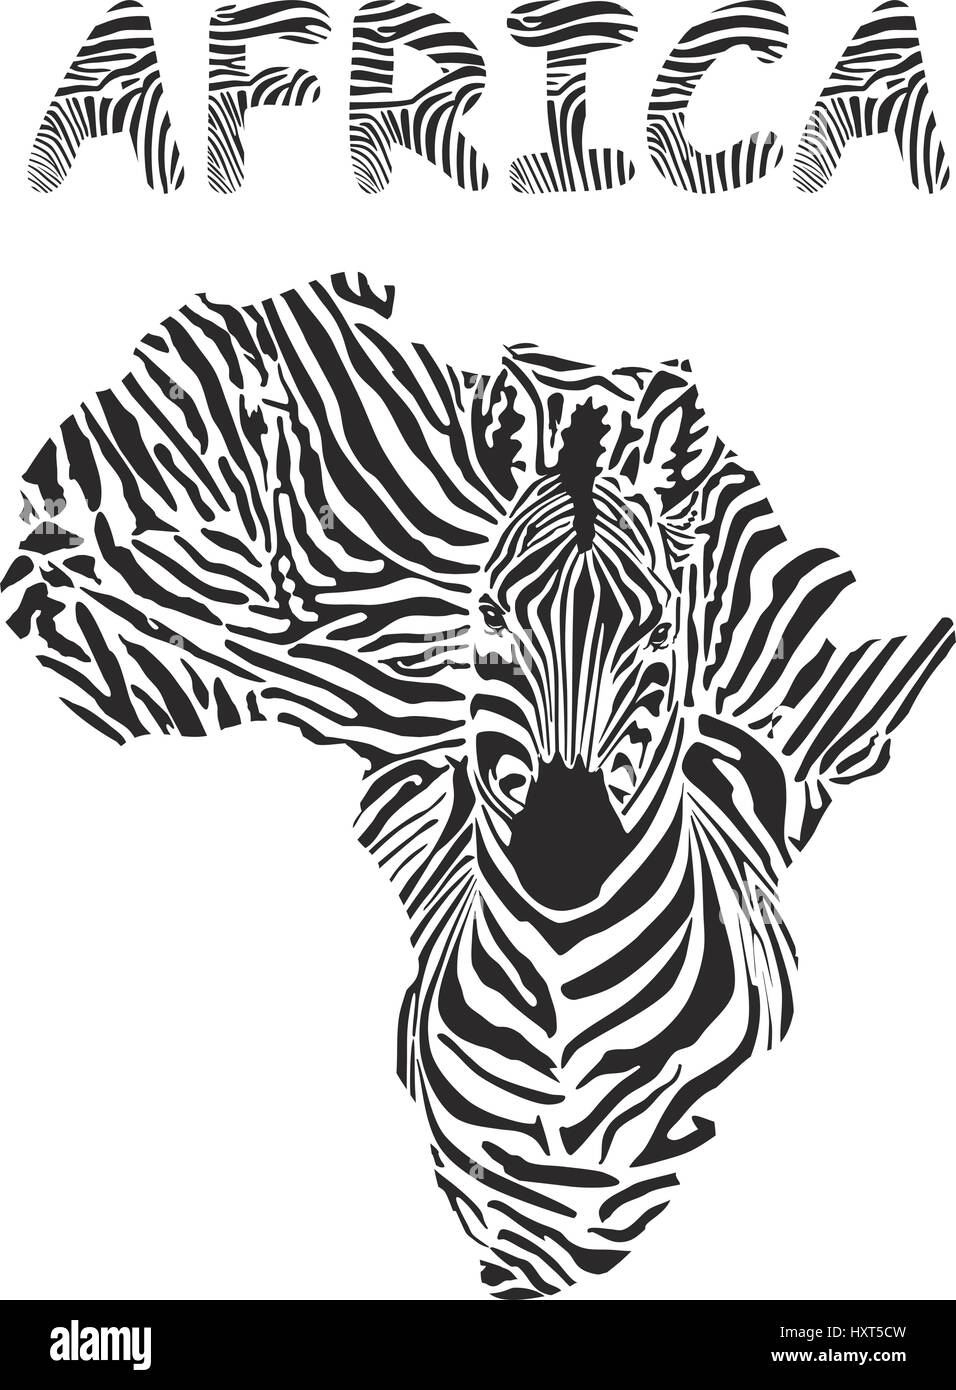 zebra silhouette and africa continent